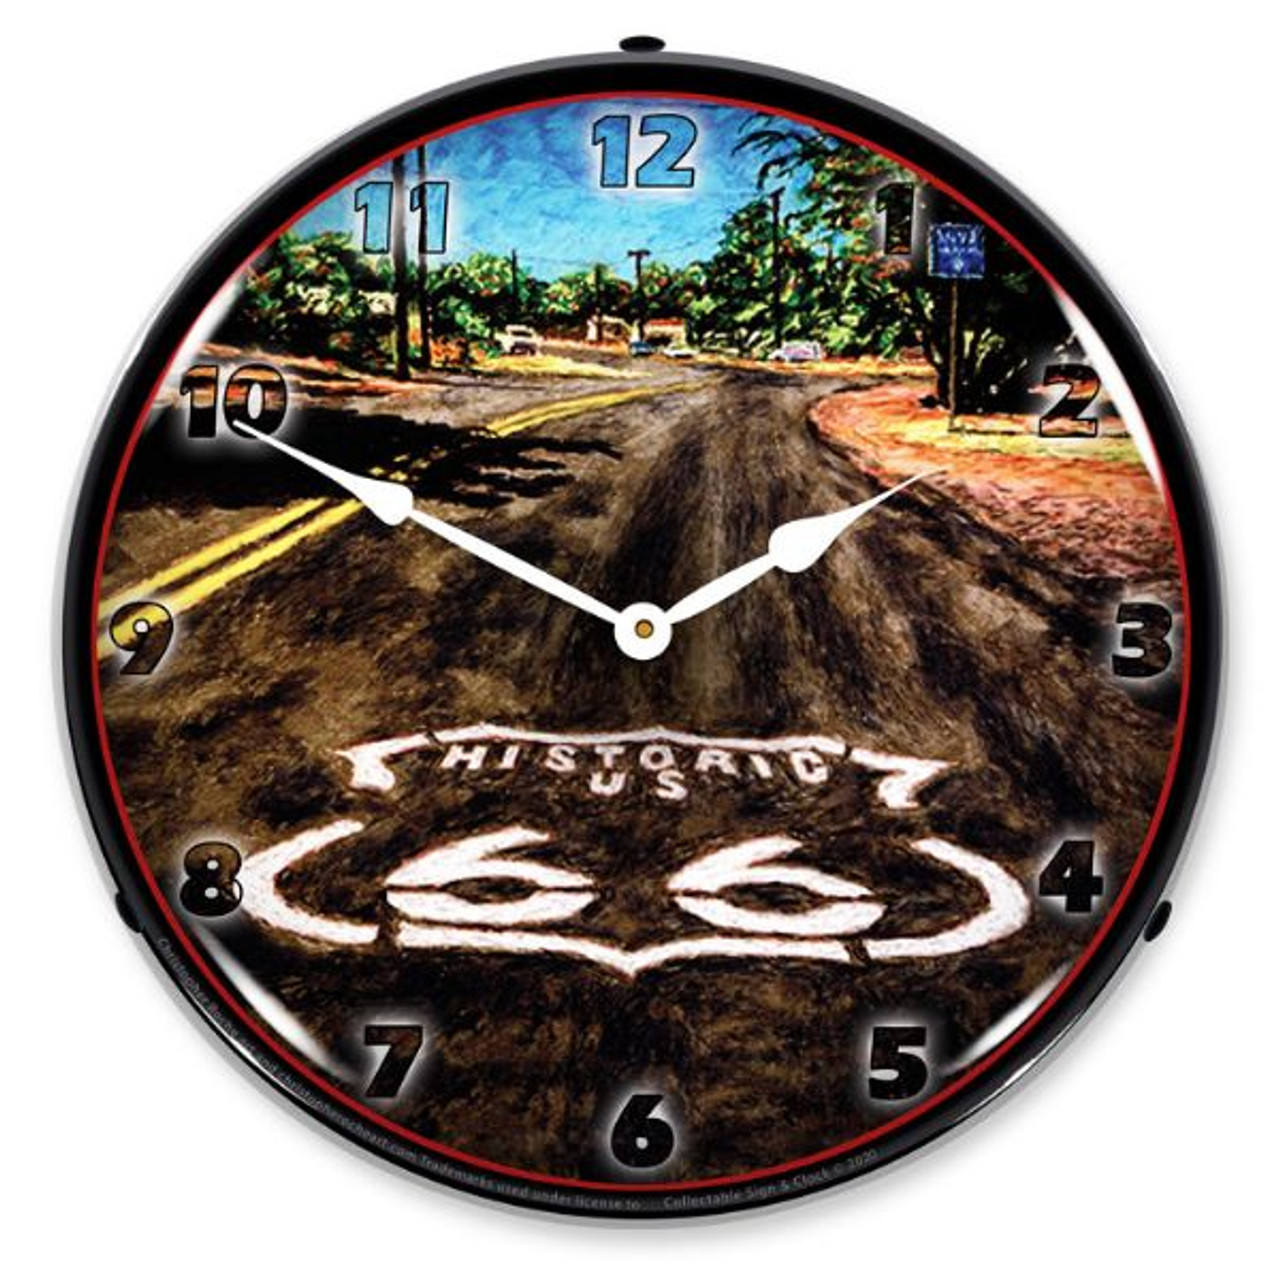 The Mother Road LED Lighted Wall Clock 14 x 14 Inches